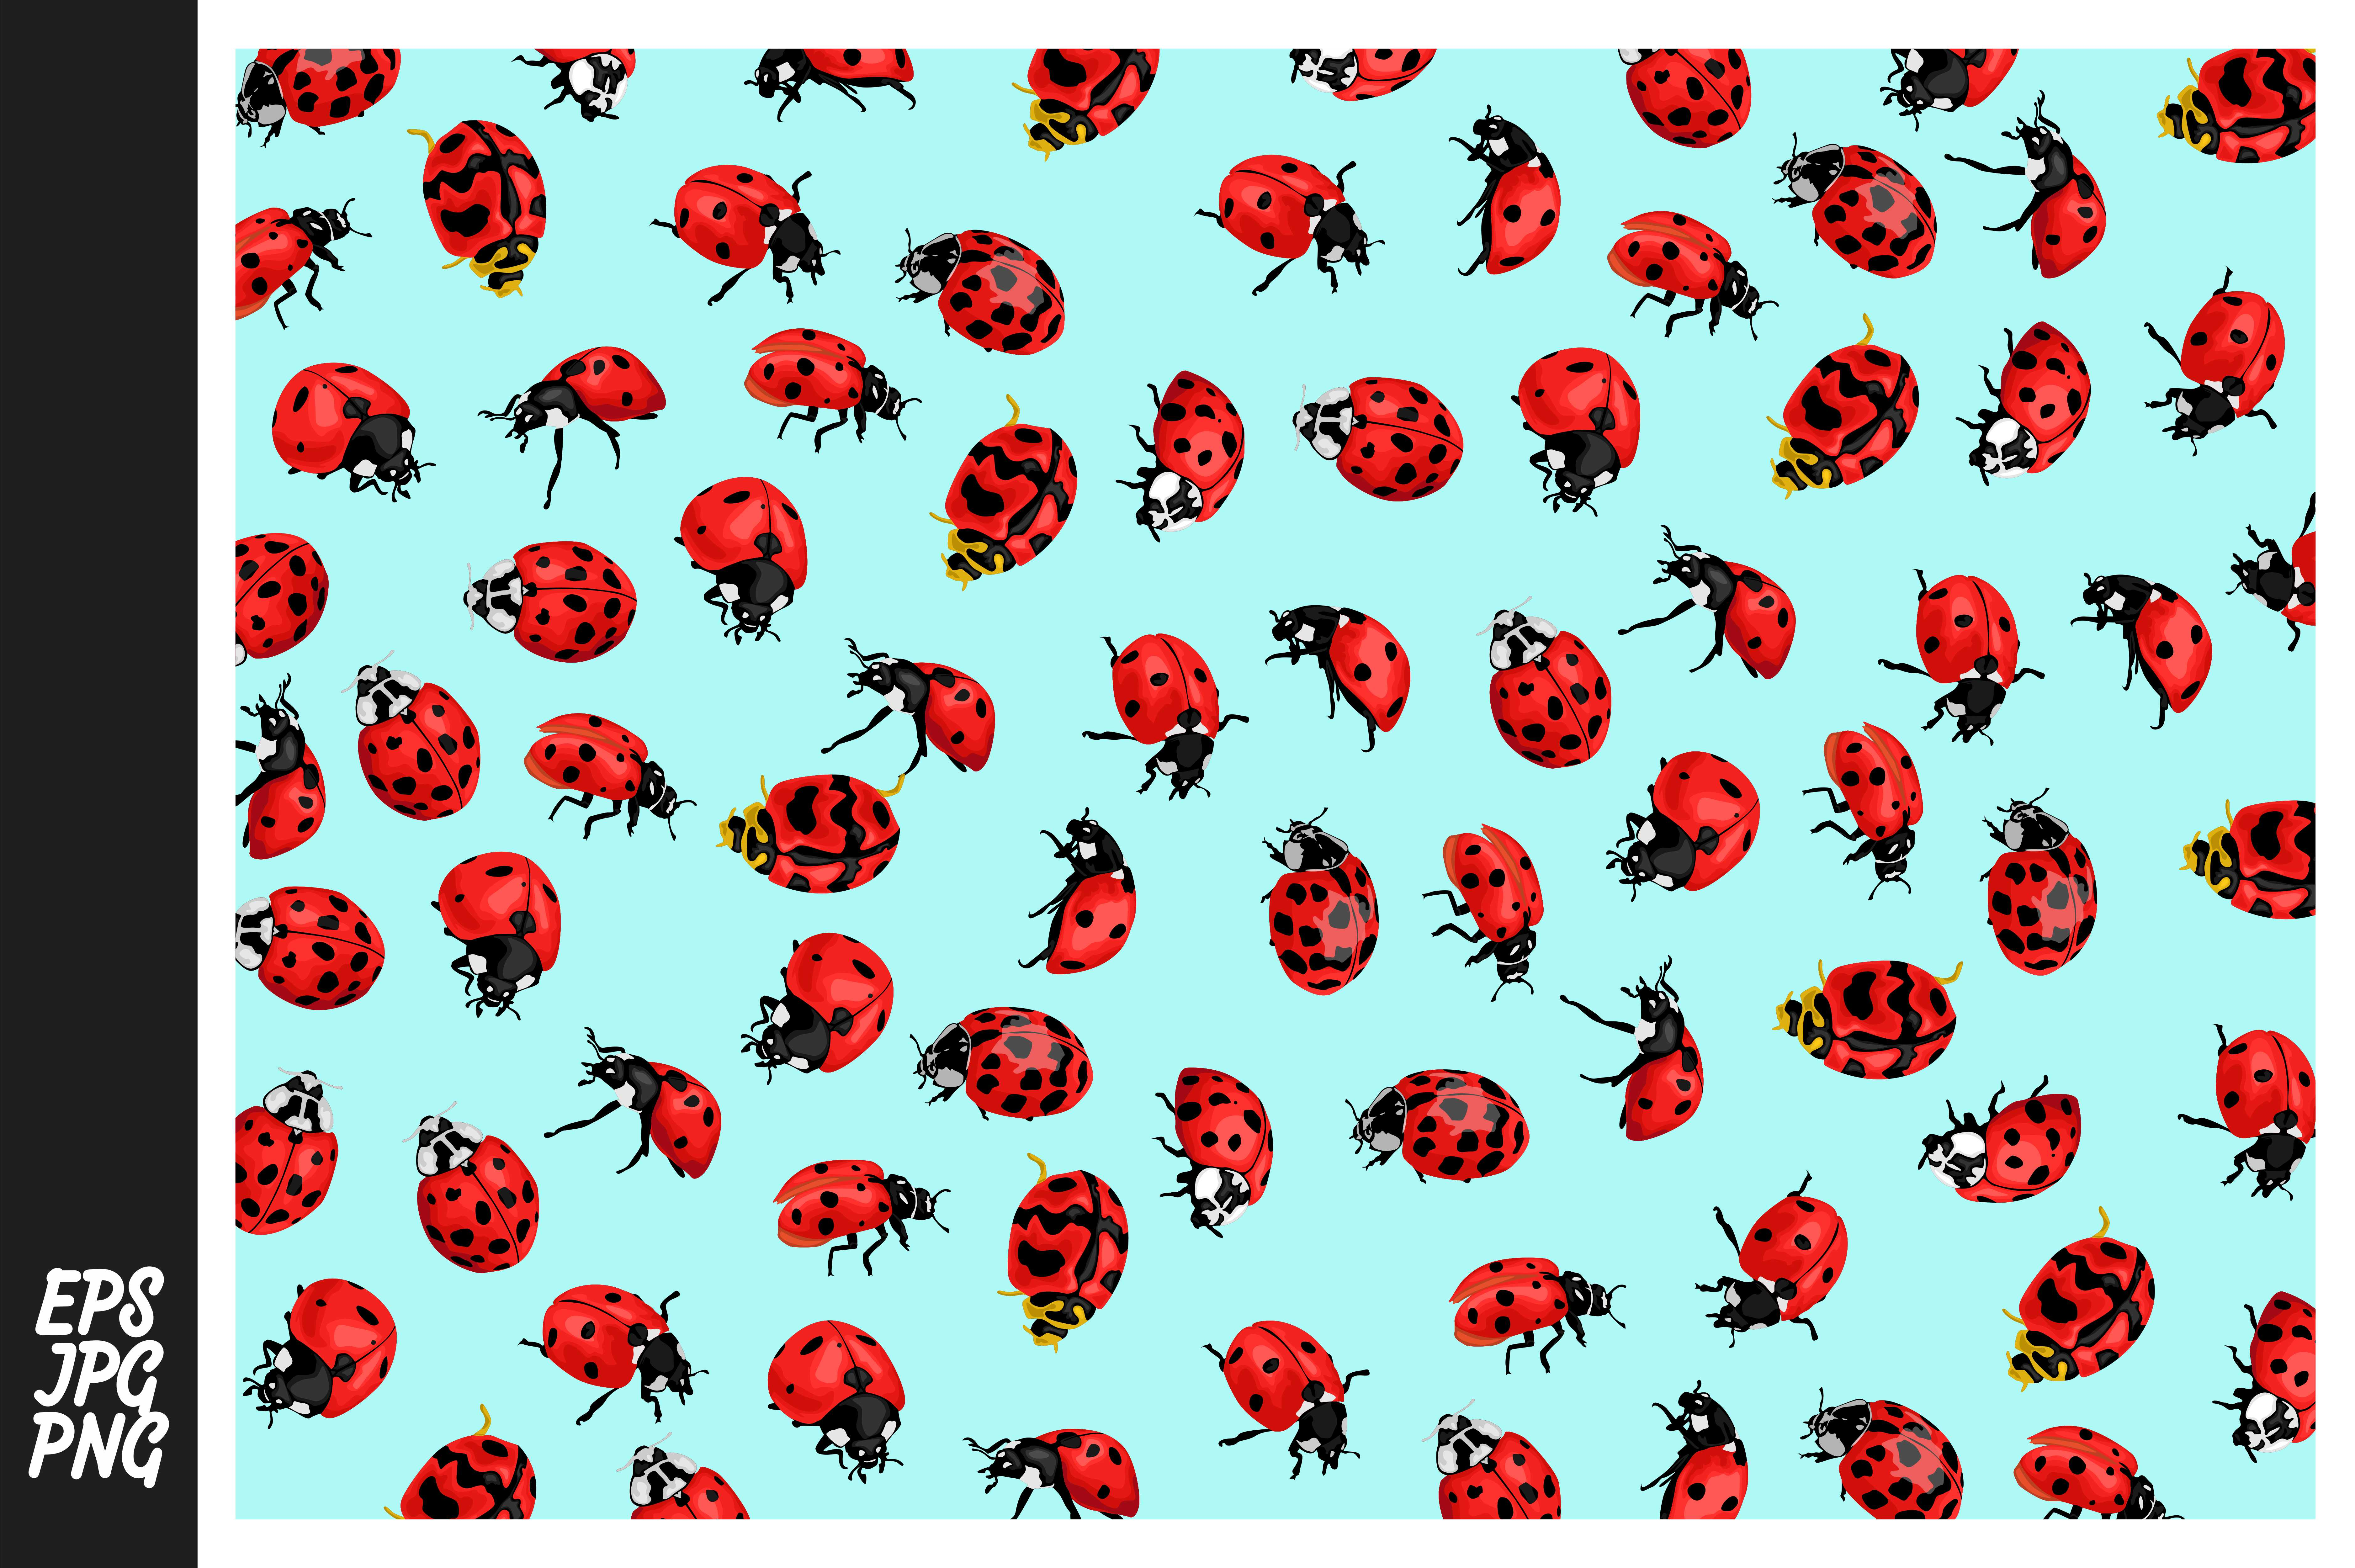 Download Free Ladybug Pattern Theme Graphic By Arief Sapta Adjie Ii Creative for Cricut Explore, Silhouette and other cutting machines.